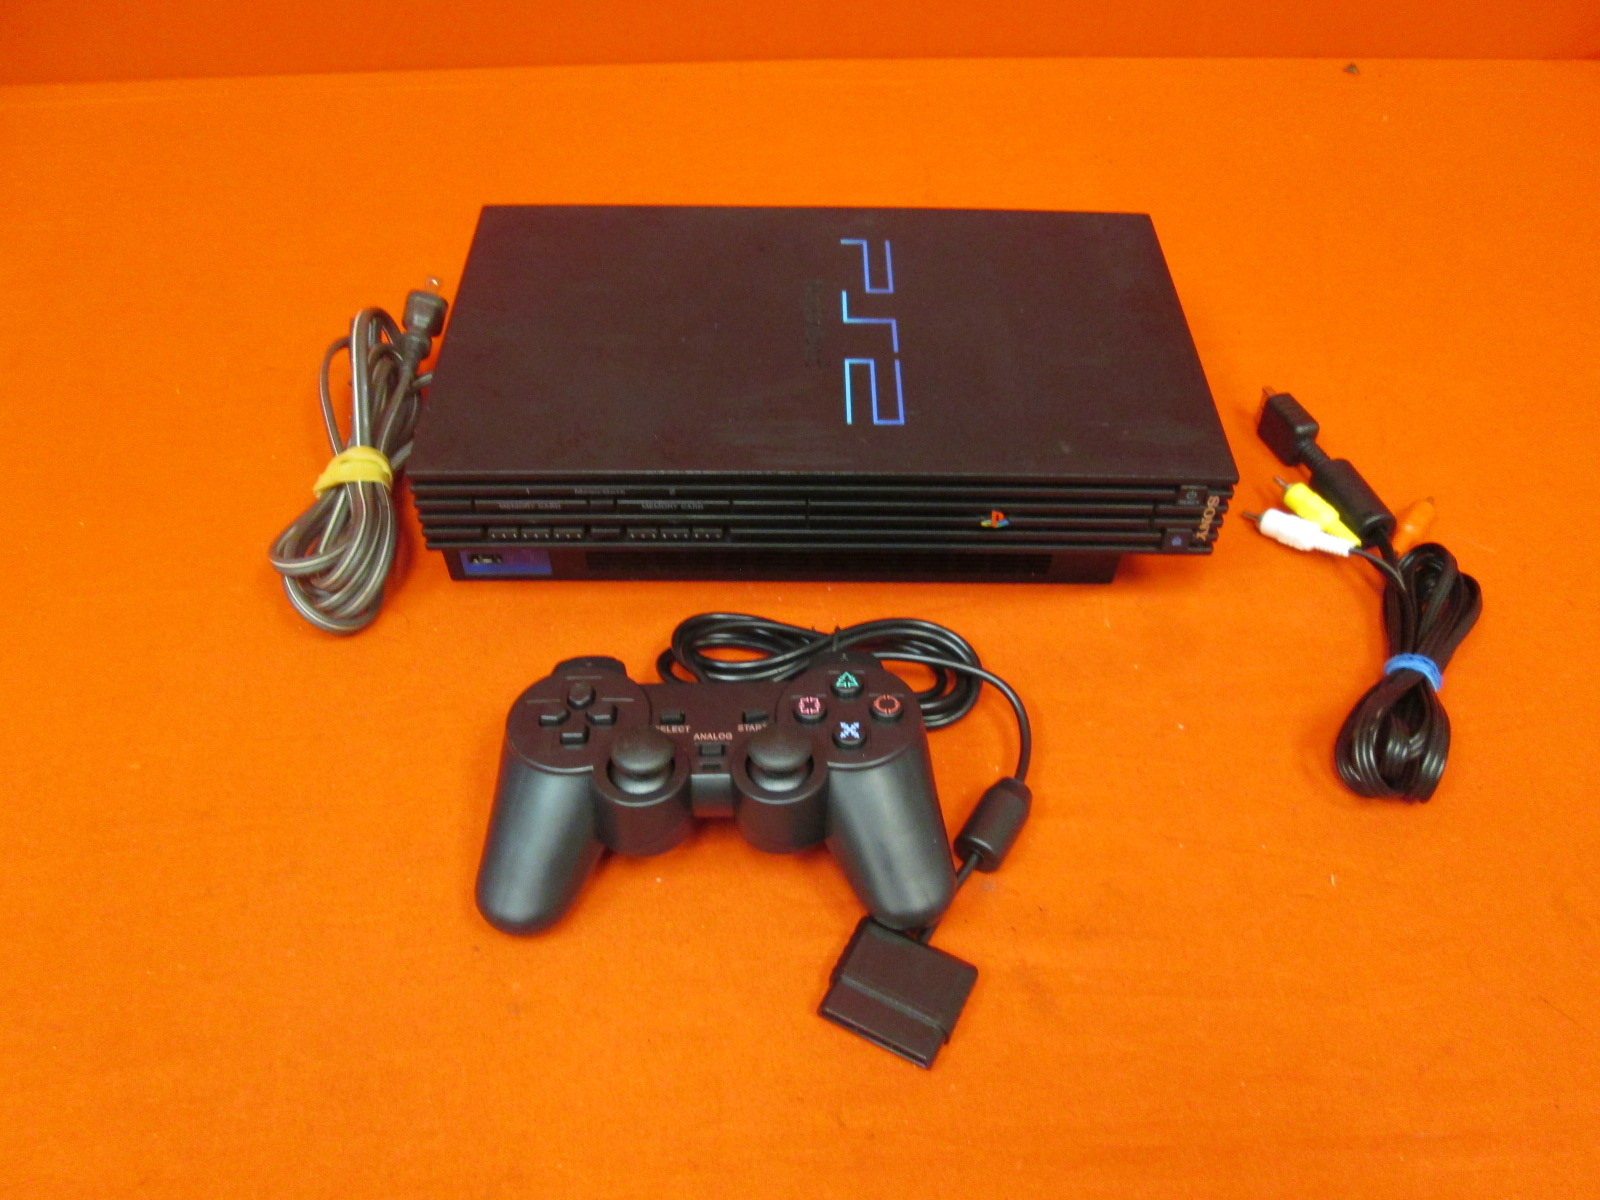 PlayStation 2 Video Game Console With Controller Black